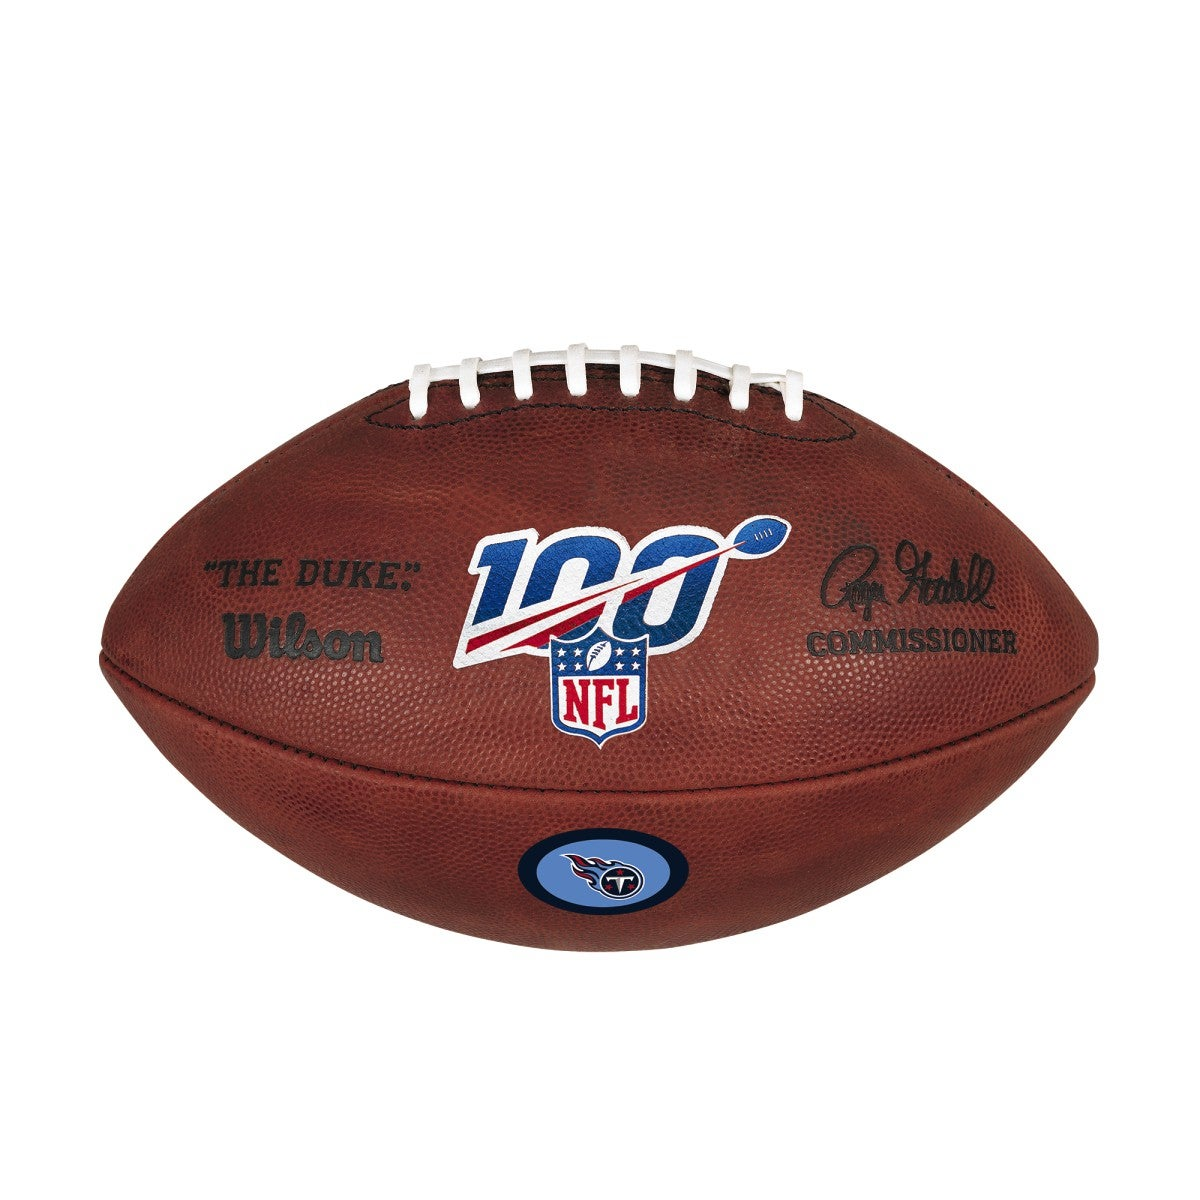 NFL 100 THE DUKE DECAL NFL FOOTBALL - TENNESSEE TITANS